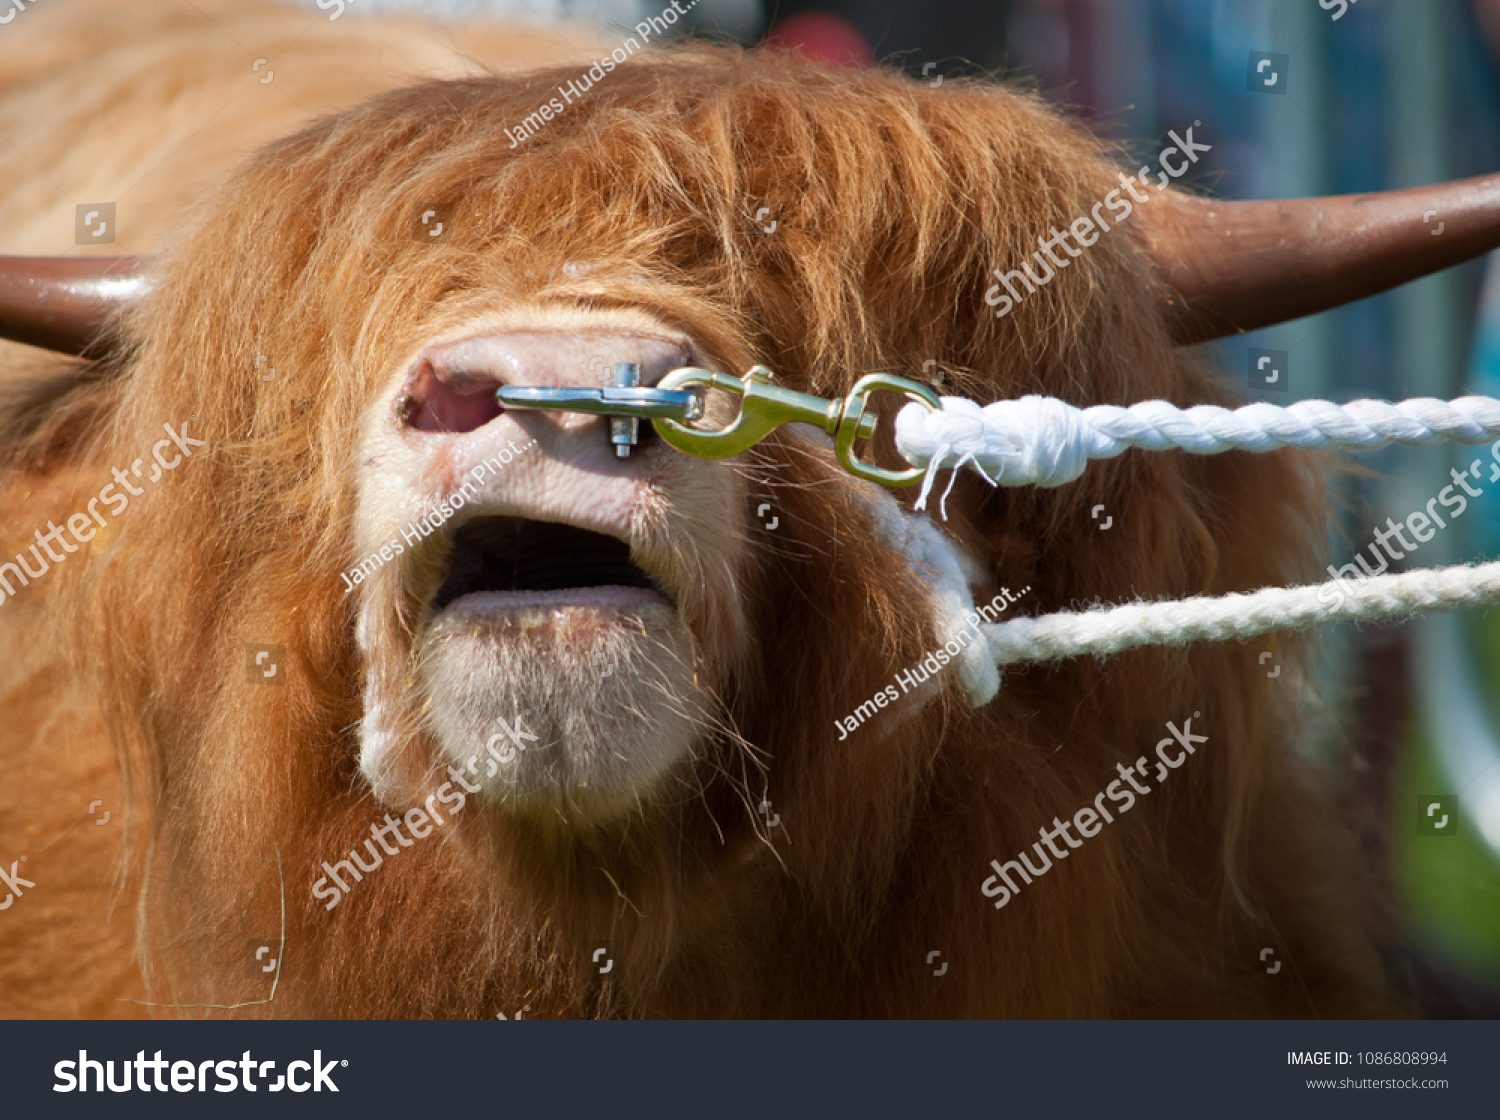 Highland Bull Nose Ring Images Stock Photos Vectors Shutterstock